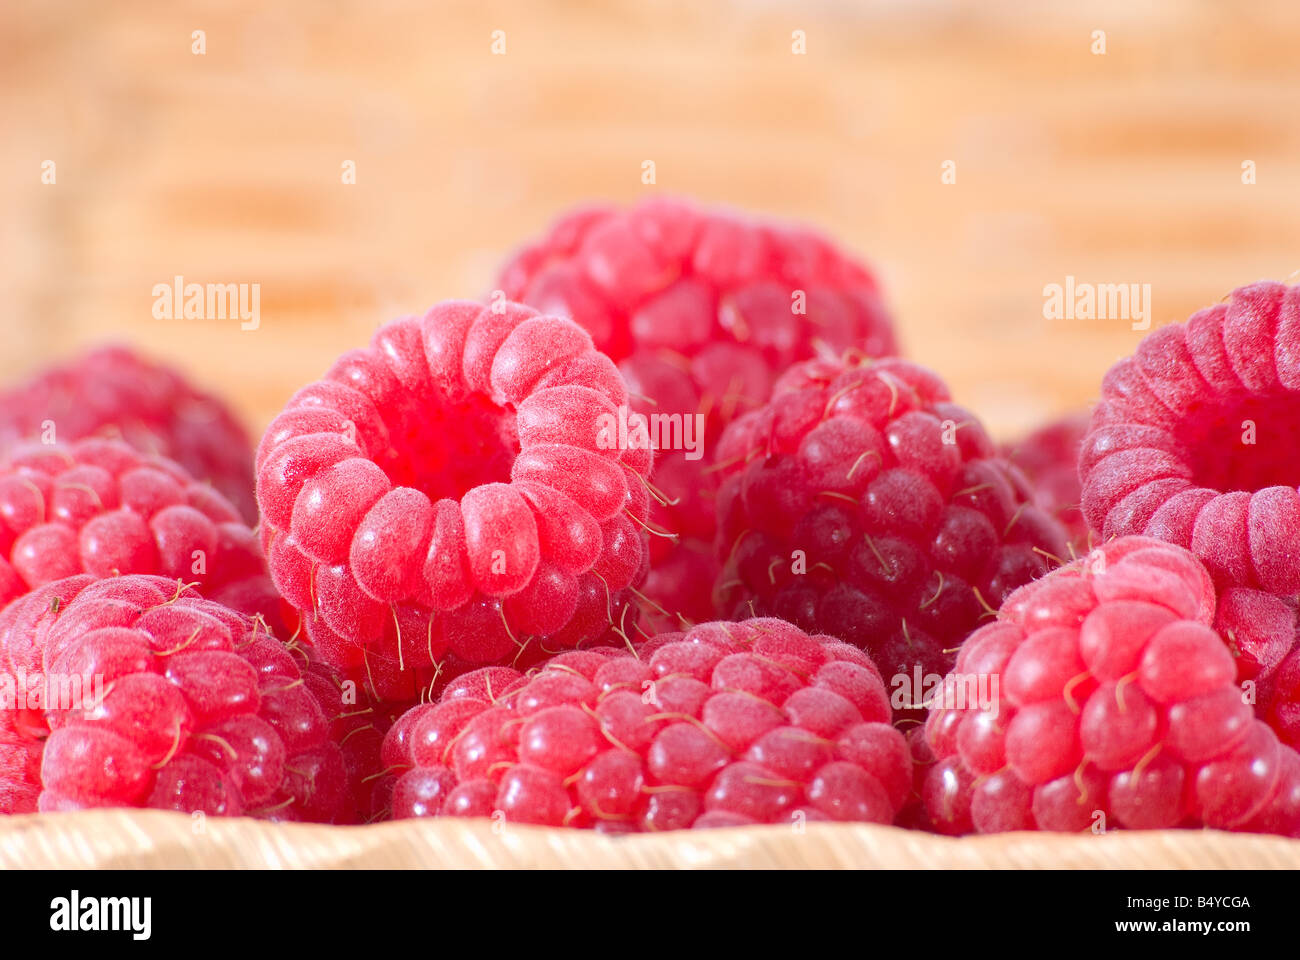 The bast basket with a raspberry is photographed a close up - Stock Image